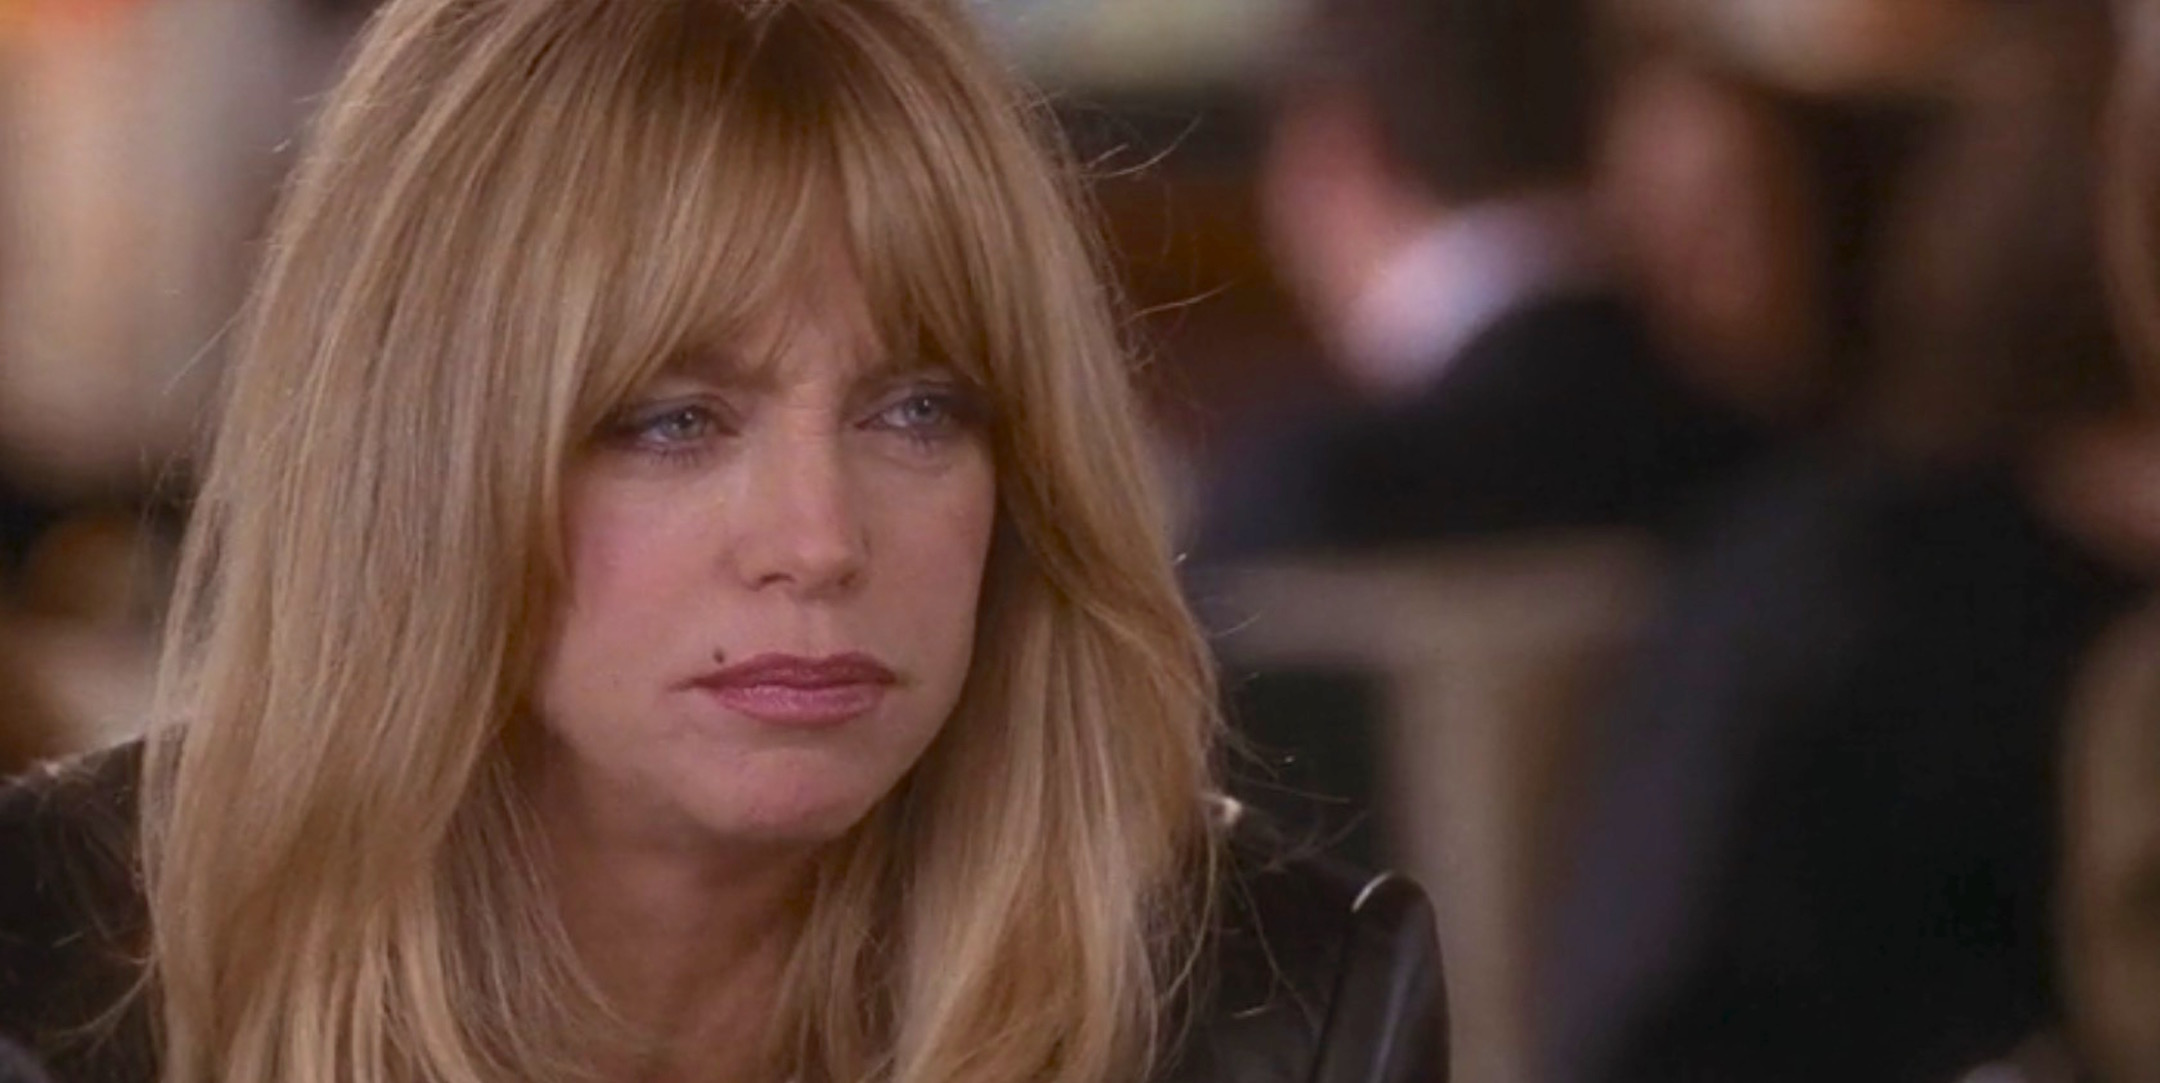 smart, shocked, angry, personality, jessica, confused, Diane Keaton, Goldie Hawn, bette midler